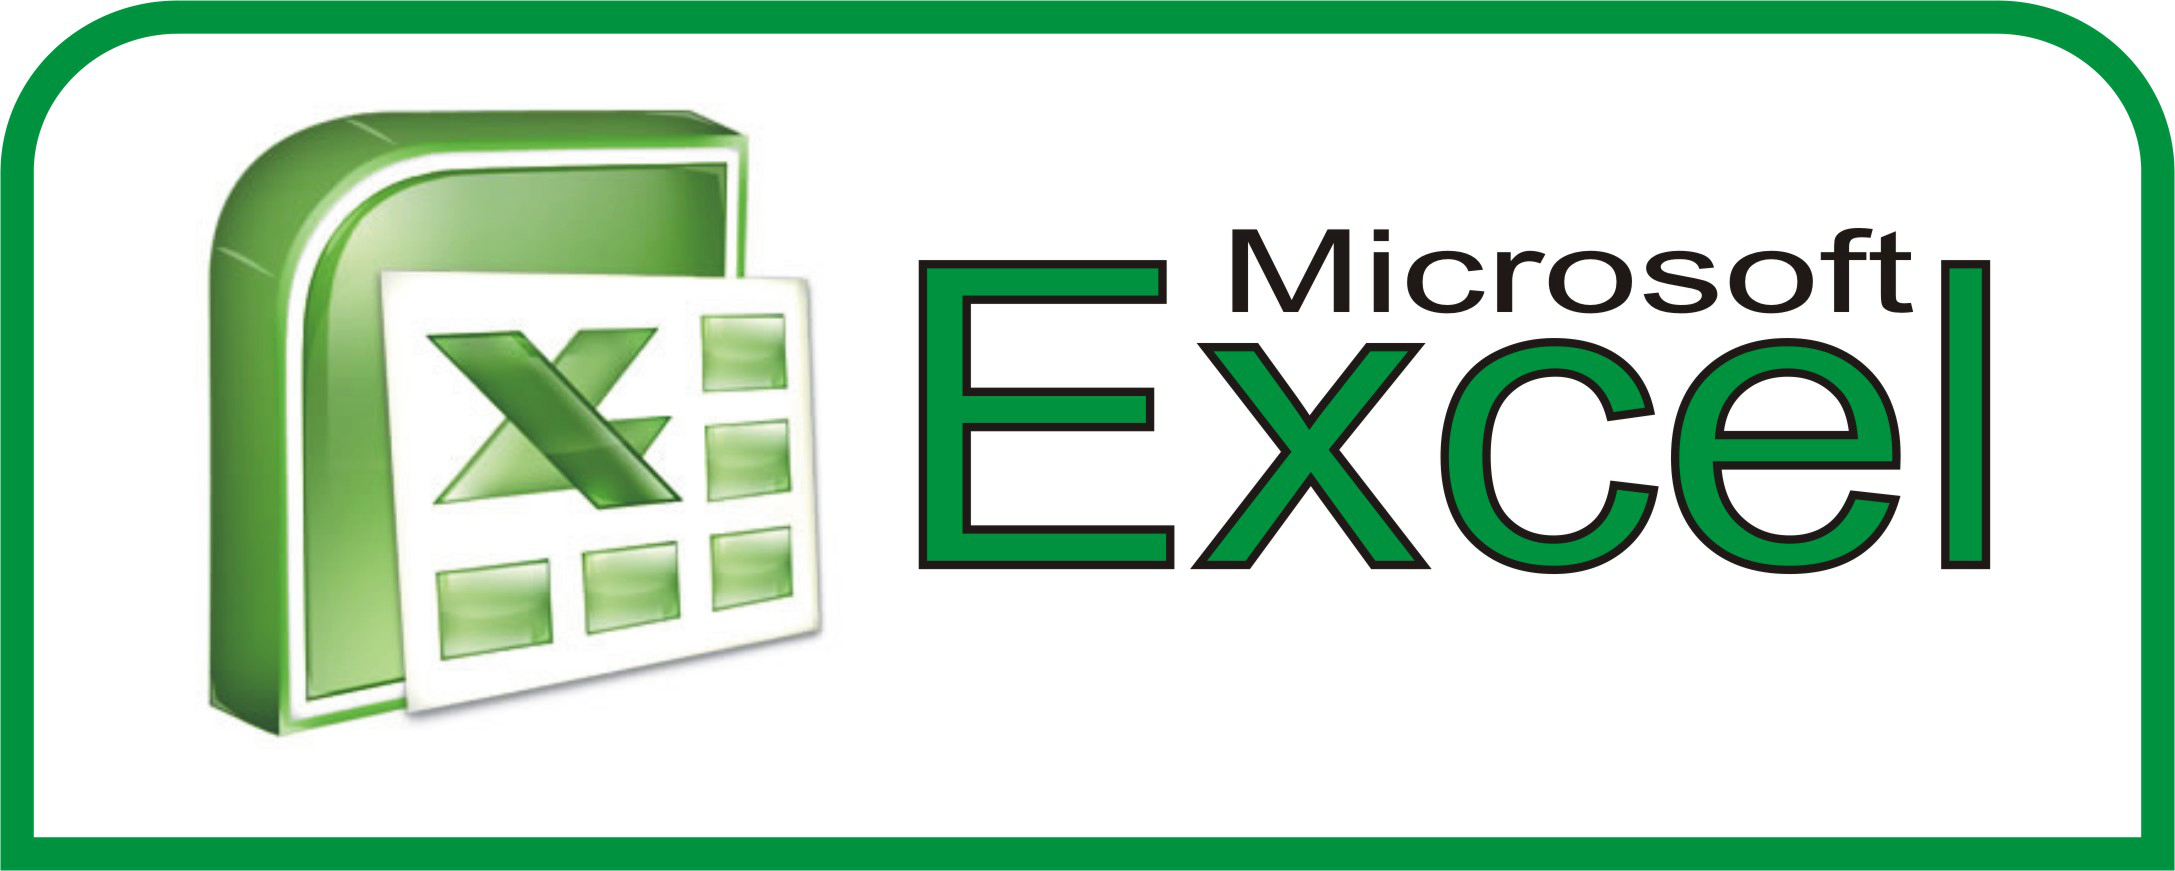 Ediblewildsus  Unusual  Excel Shortcuts You Probably Didnt Know About  Techdissected With Excellent Excel Add Ins  Besides Vba Tutorial Excel  Furthermore Excel View Duplicates With Appealing Excel Documentation Also Adding Sums In Excel In Addition Download Excel Free For Mac And Parse Text Excel As Well As Bracket Generator Excel Additionally What Is A Constant In Excel From Techdissectedcom With Ediblewildsus  Excellent  Excel Shortcuts You Probably Didnt Know About  Techdissected With Appealing Excel Add Ins  Besides Vba Tutorial Excel  Furthermore Excel View Duplicates And Unusual Excel Documentation Also Adding Sums In Excel In Addition Download Excel Free For Mac From Techdissectedcom